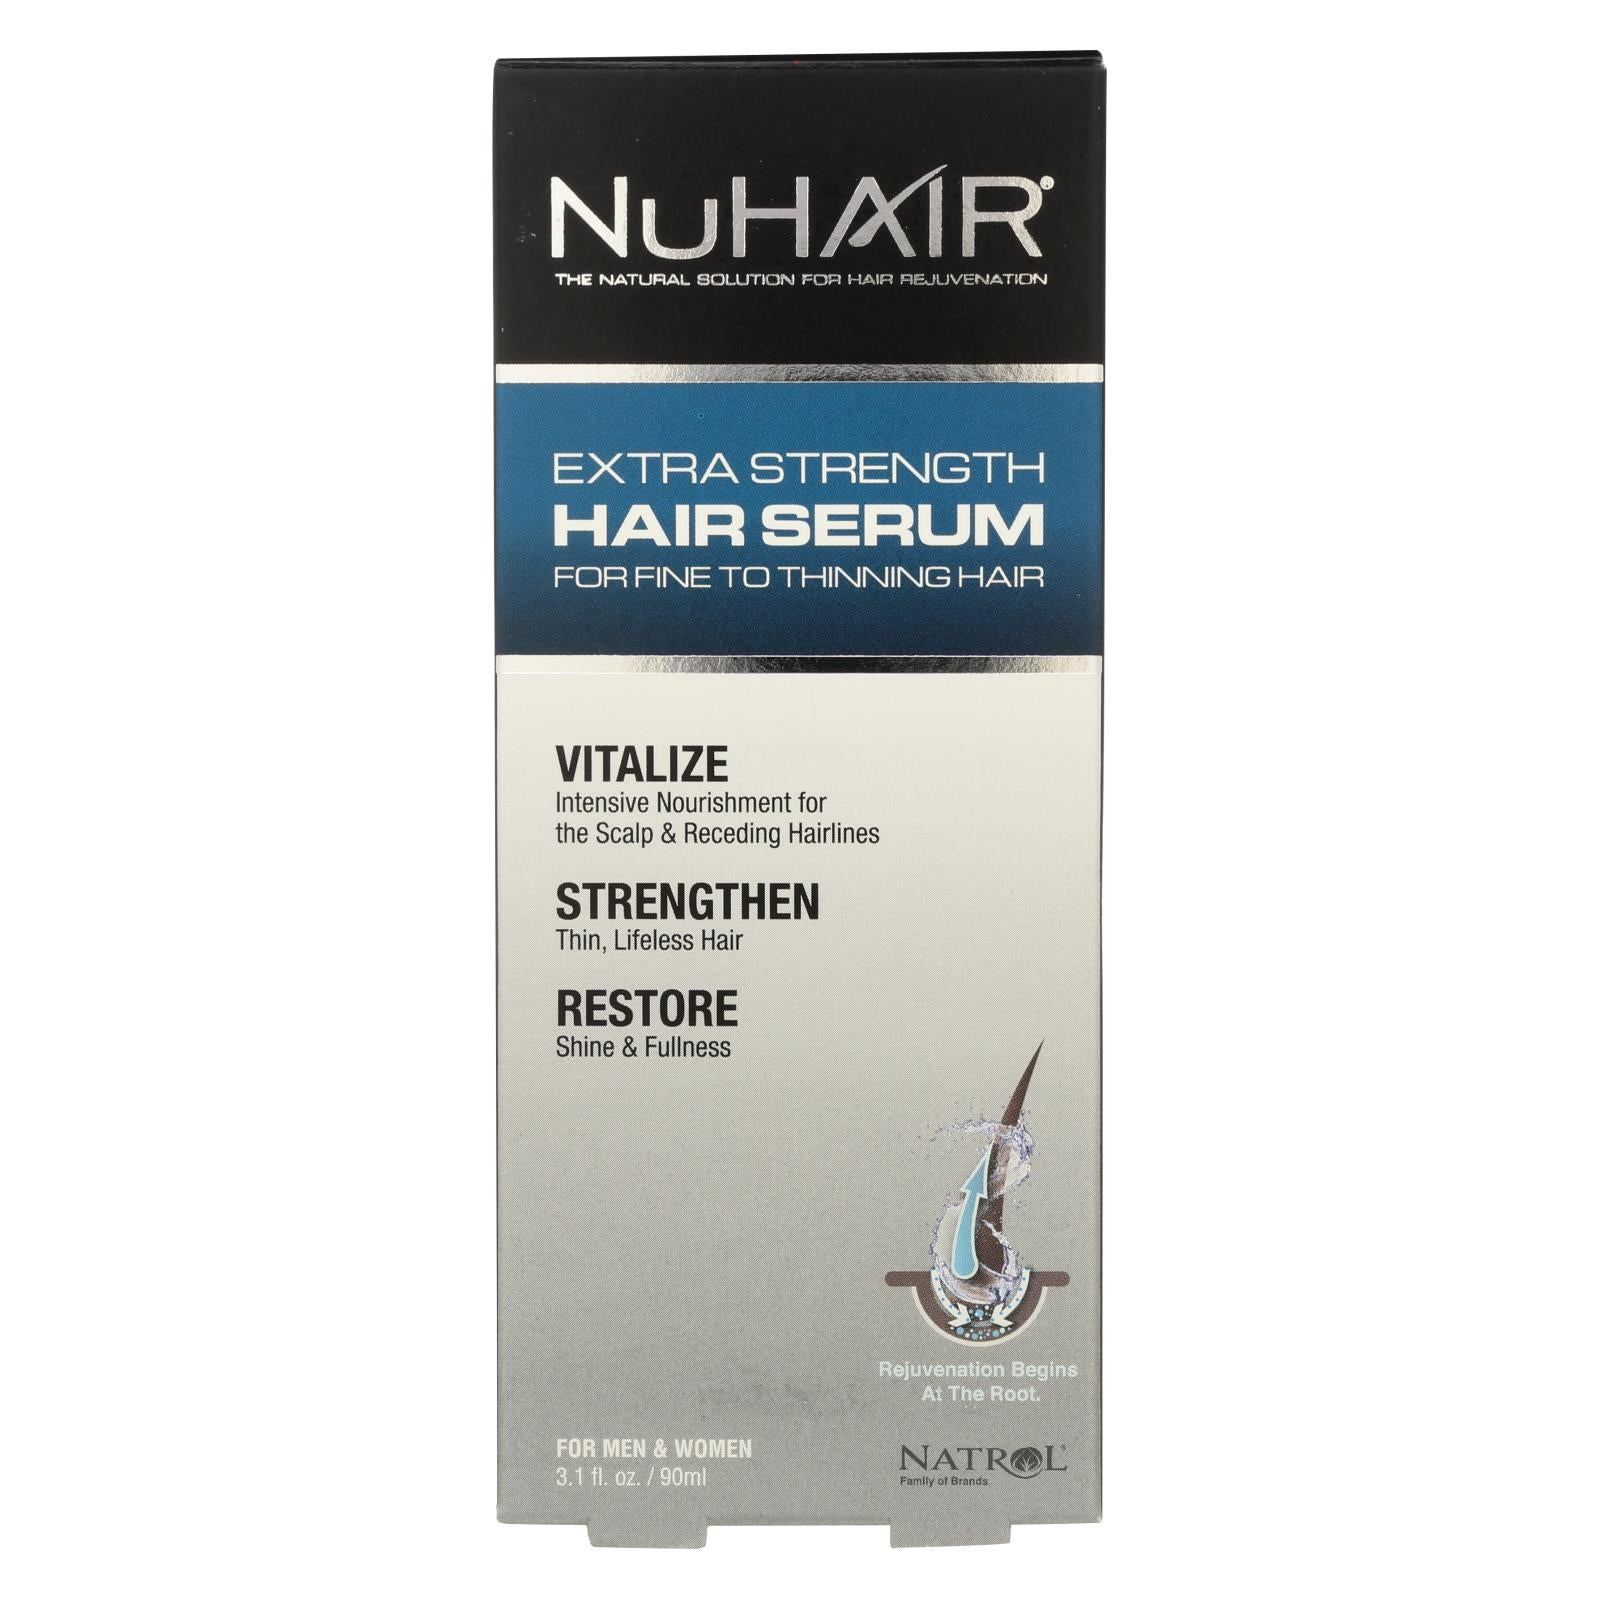 Nuhair Extra Strength Thinning Hair Serum For Men And Women - 3.1 Fl Oz HG0607093